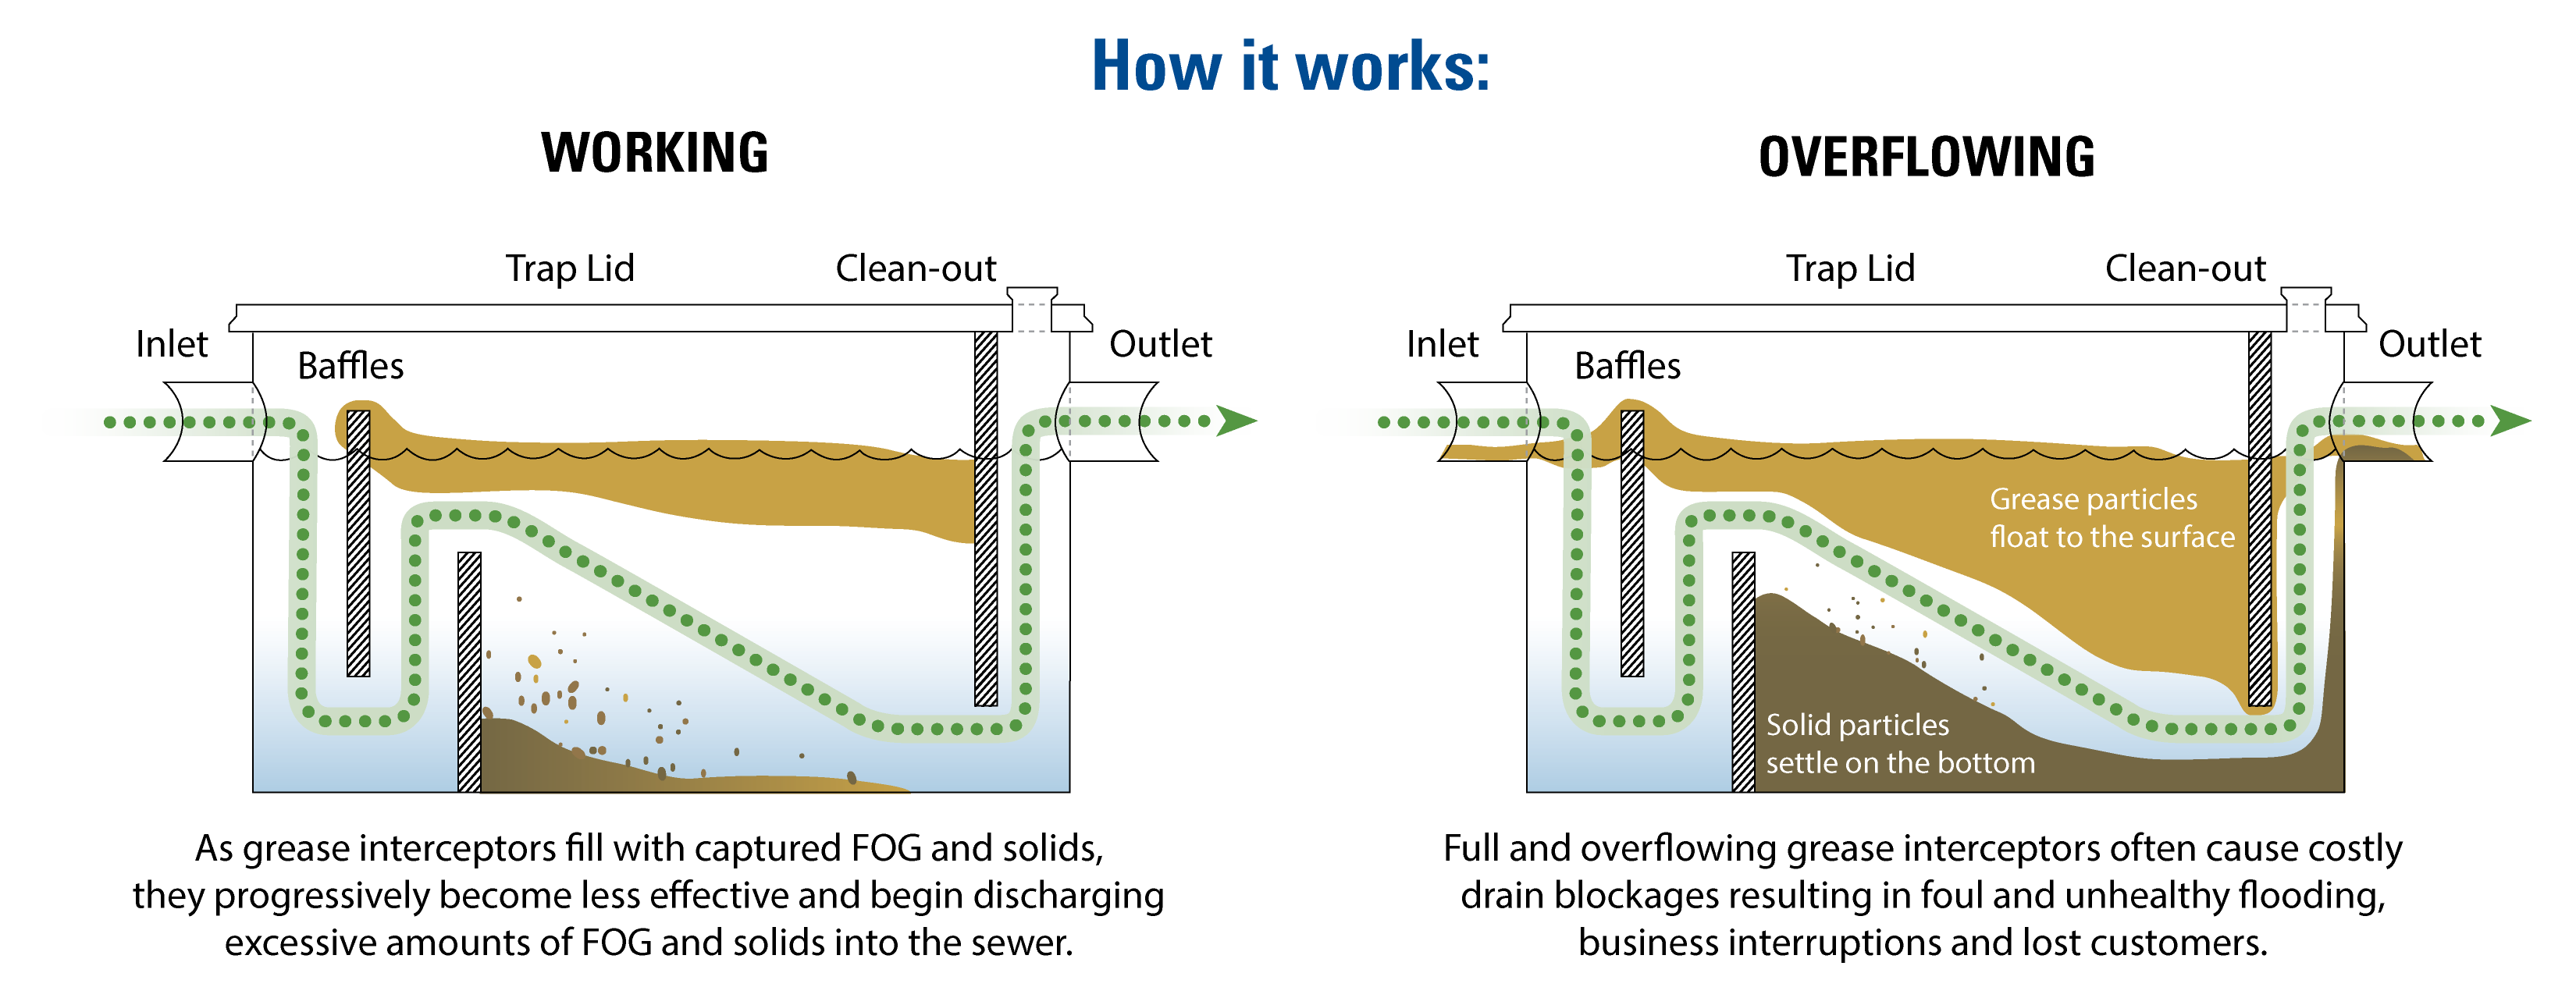 grease trap how it works image